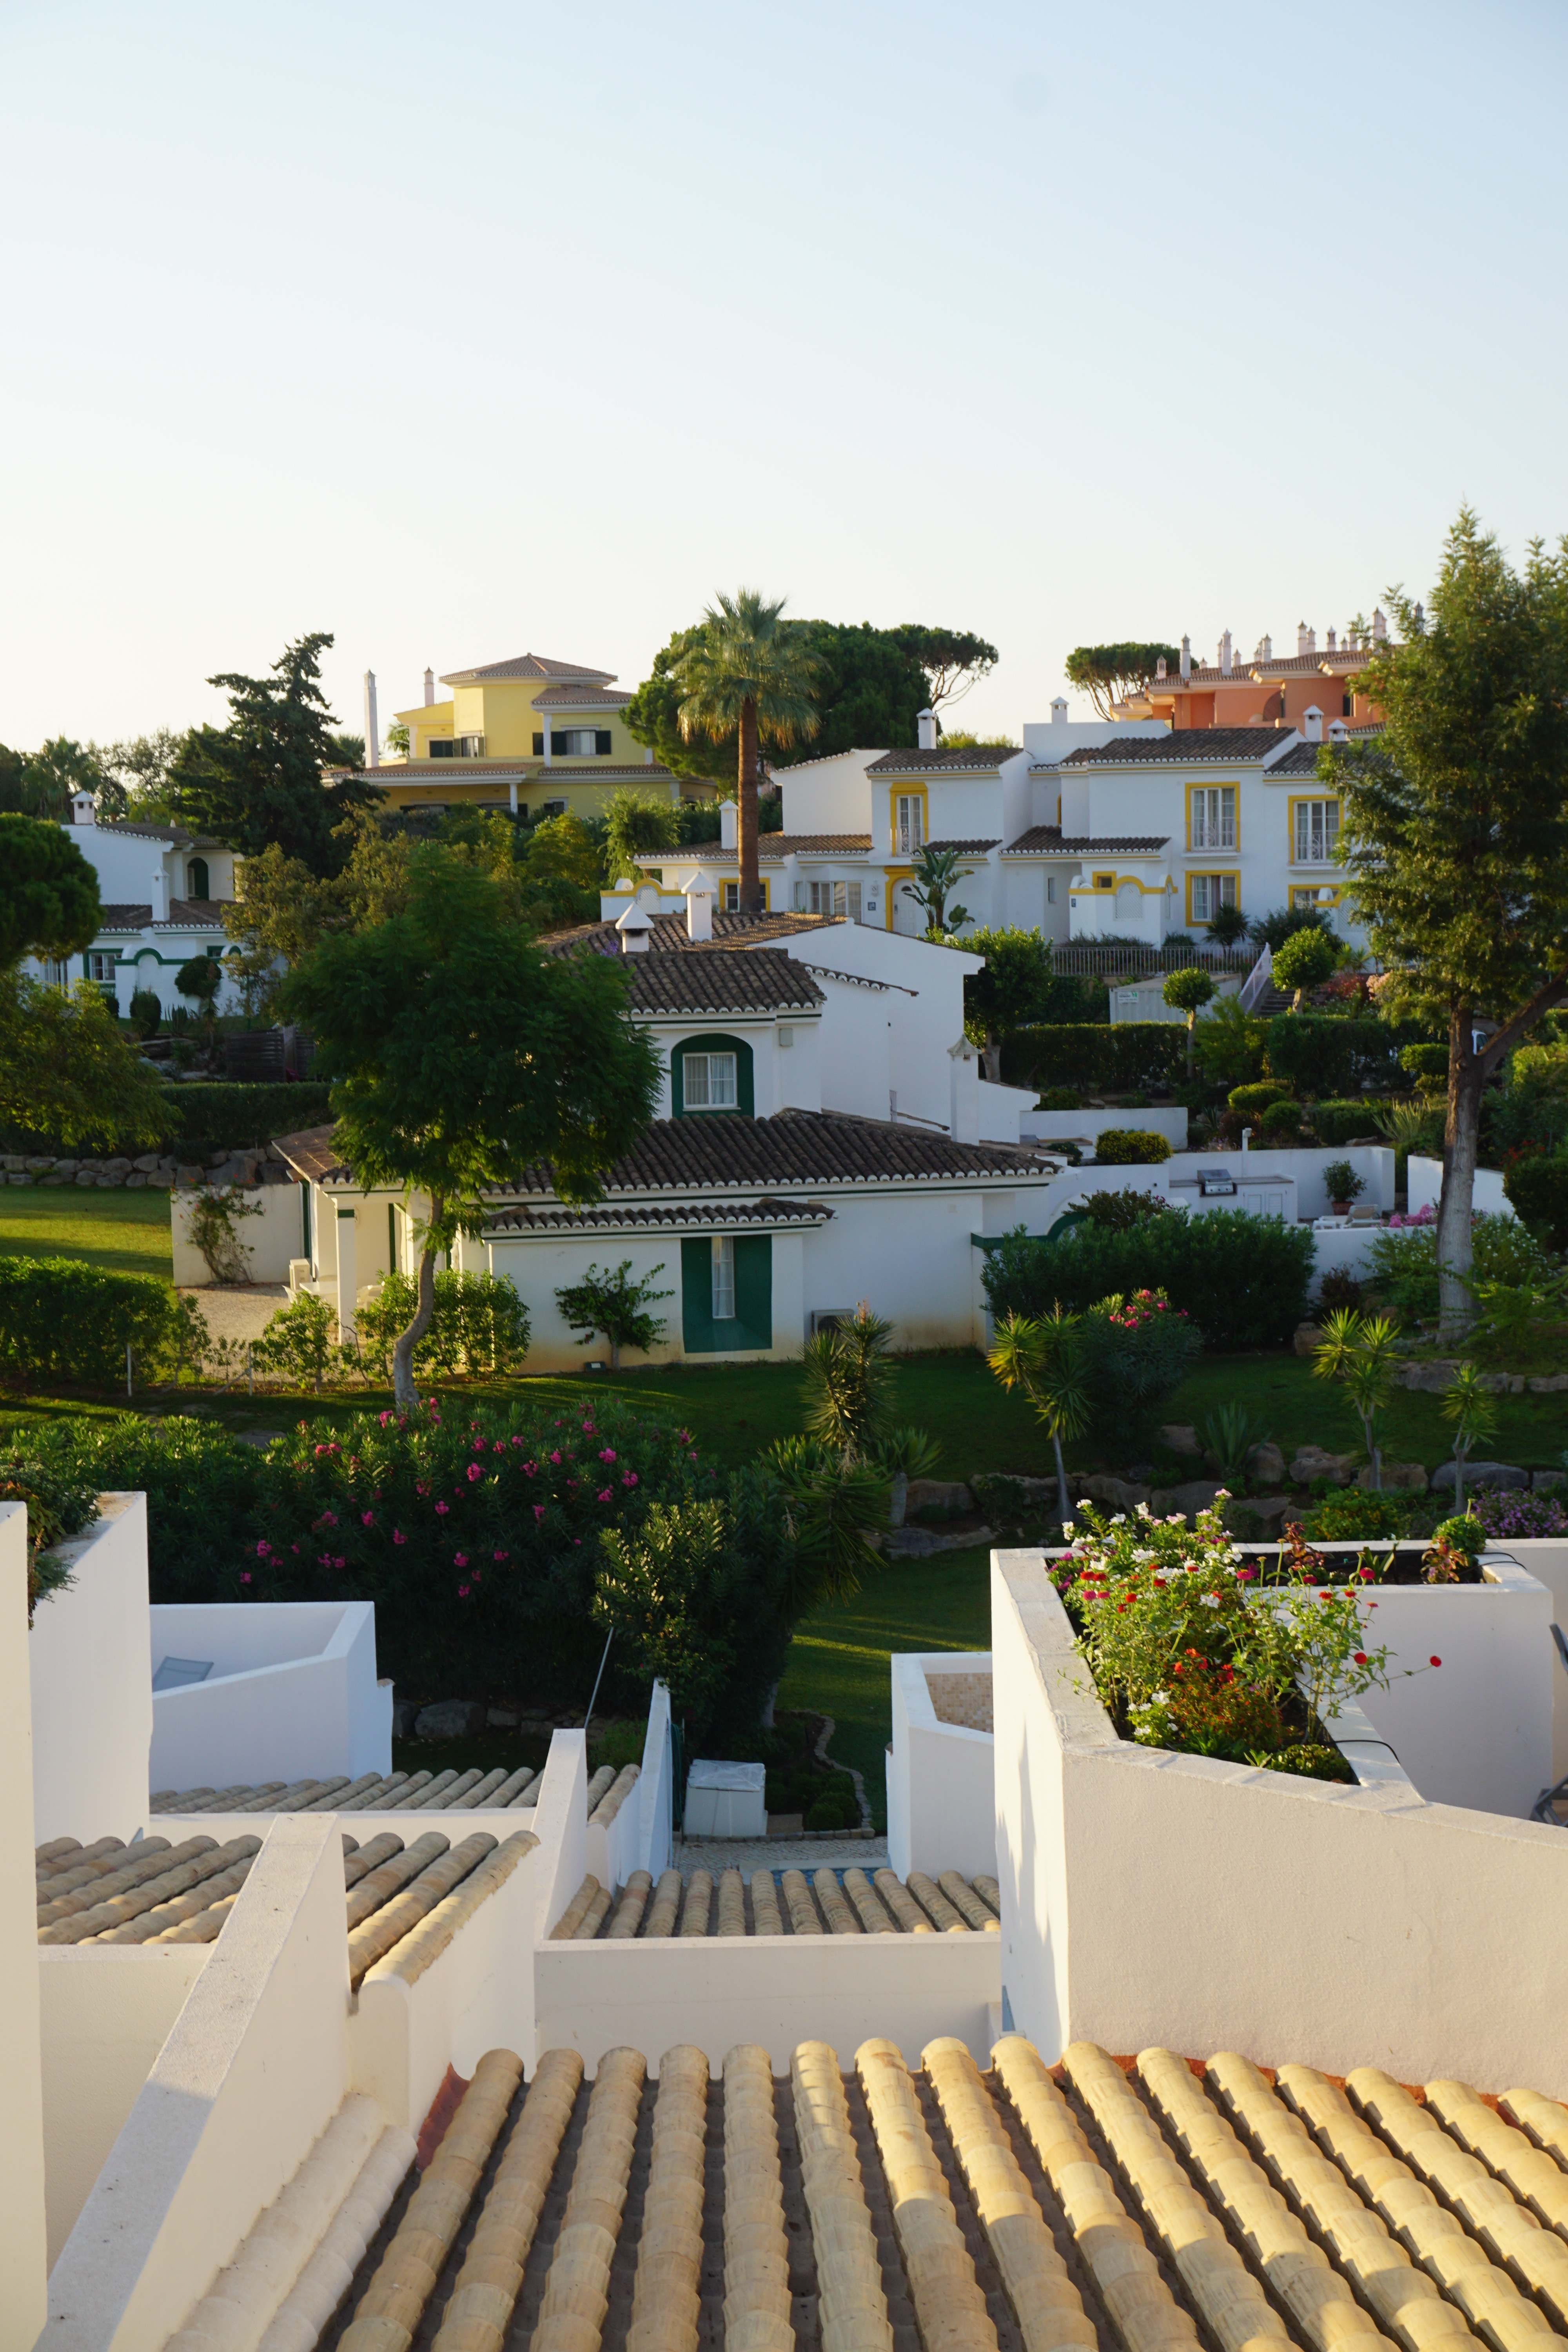 View from our terrace at the Four Seasons Fairways, the best luxury villa resort in the Algarve, Portugal